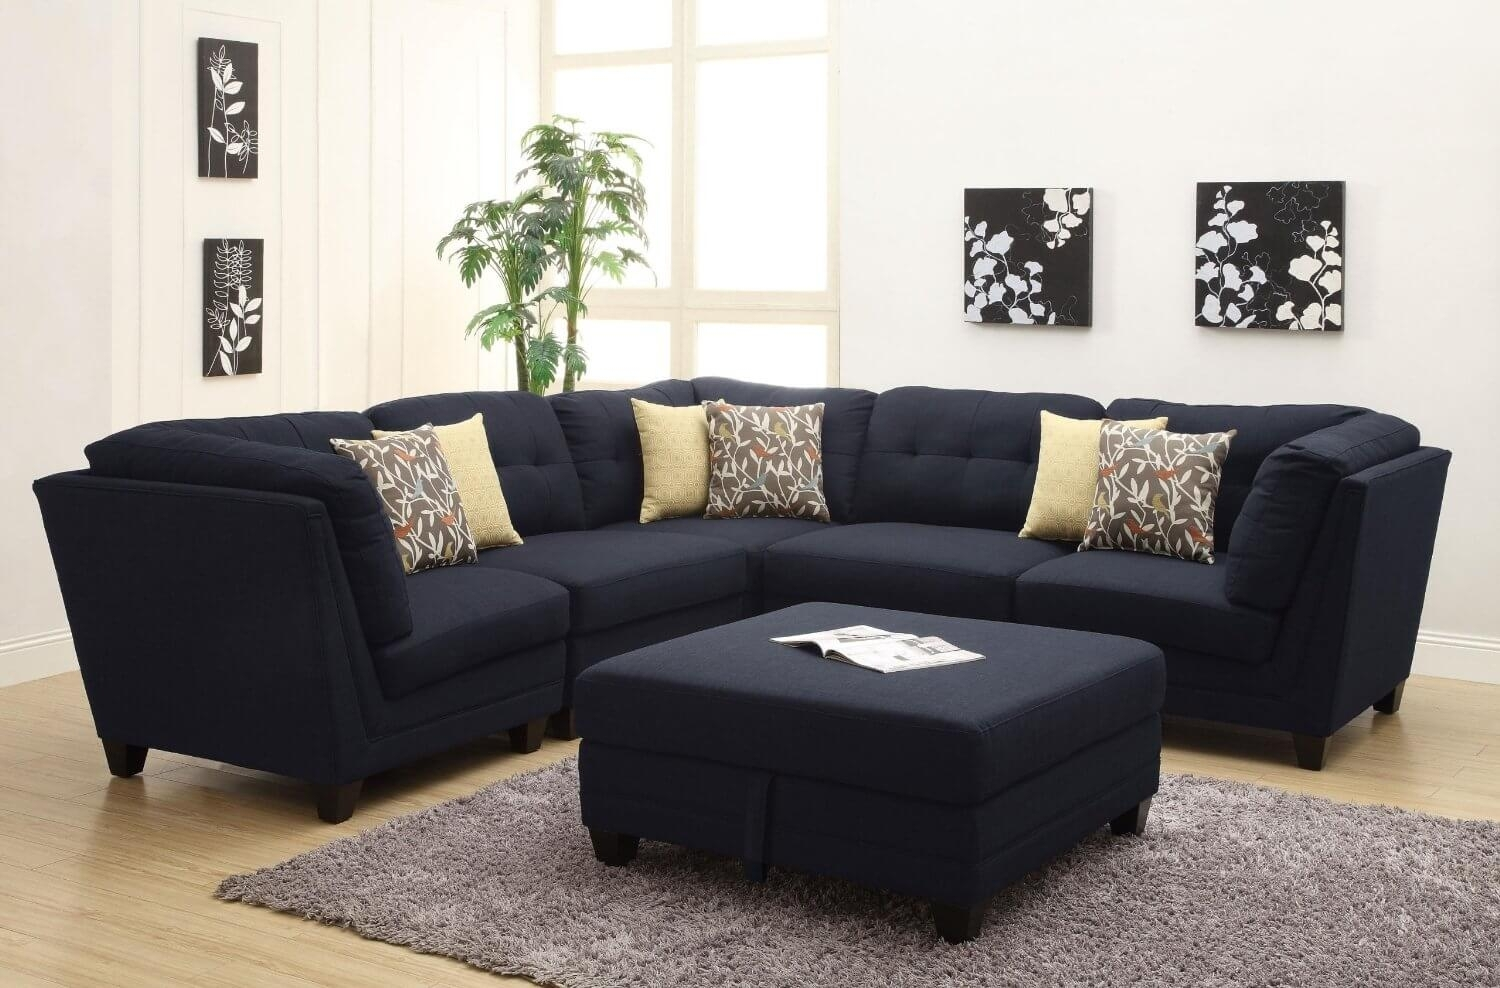 100 Awesome Sectional Sofas Under $1,000 (2018) For Black Sectional Sofas (Gallery 14 of 15)